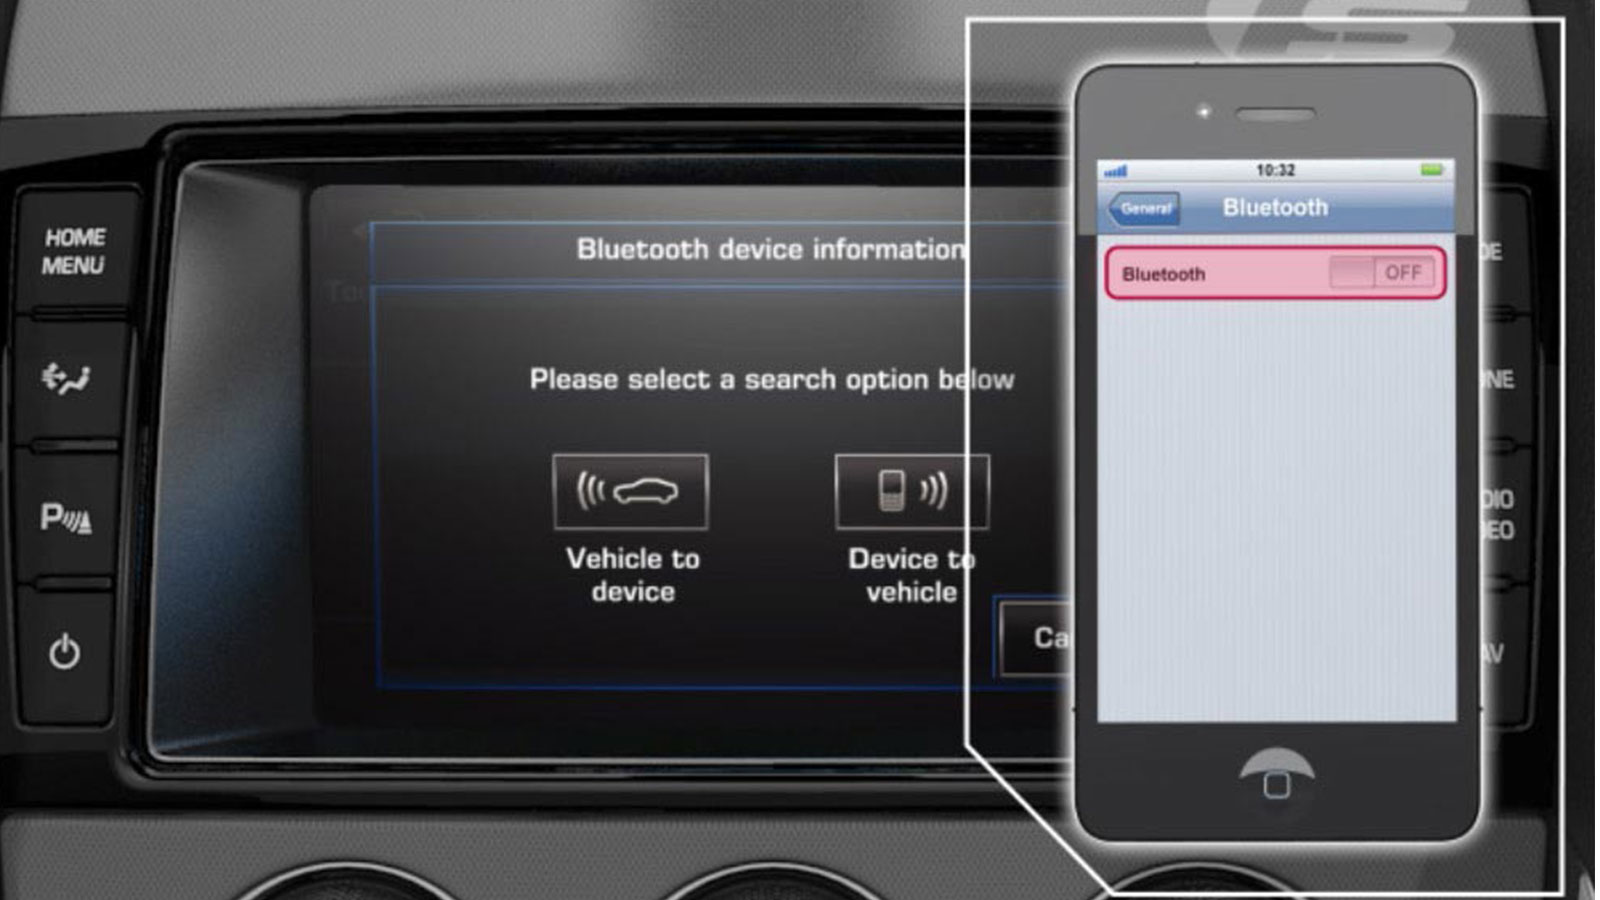 Incontrol Bluetooth Vehicle To Device Pairing On-Screen Display